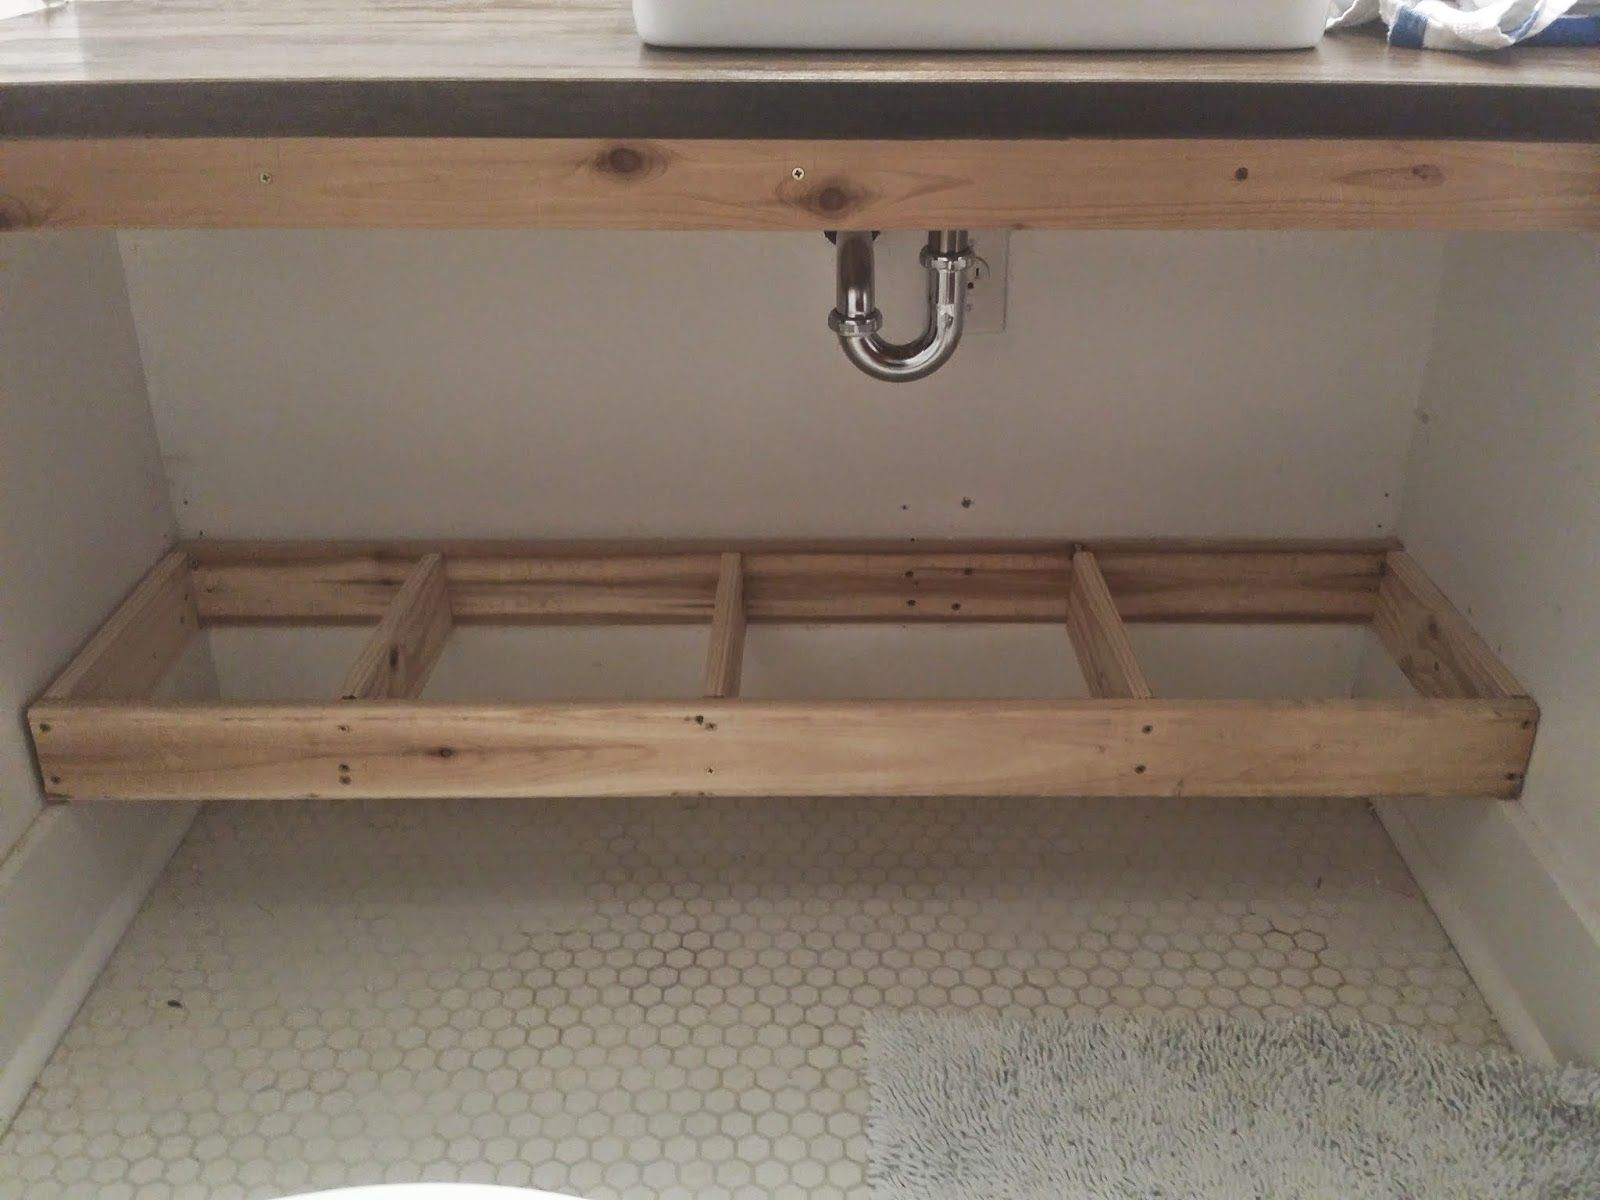 Diy Floating Bathroom Vanity How To Built The Conservatory Vanity If We Recess The Top